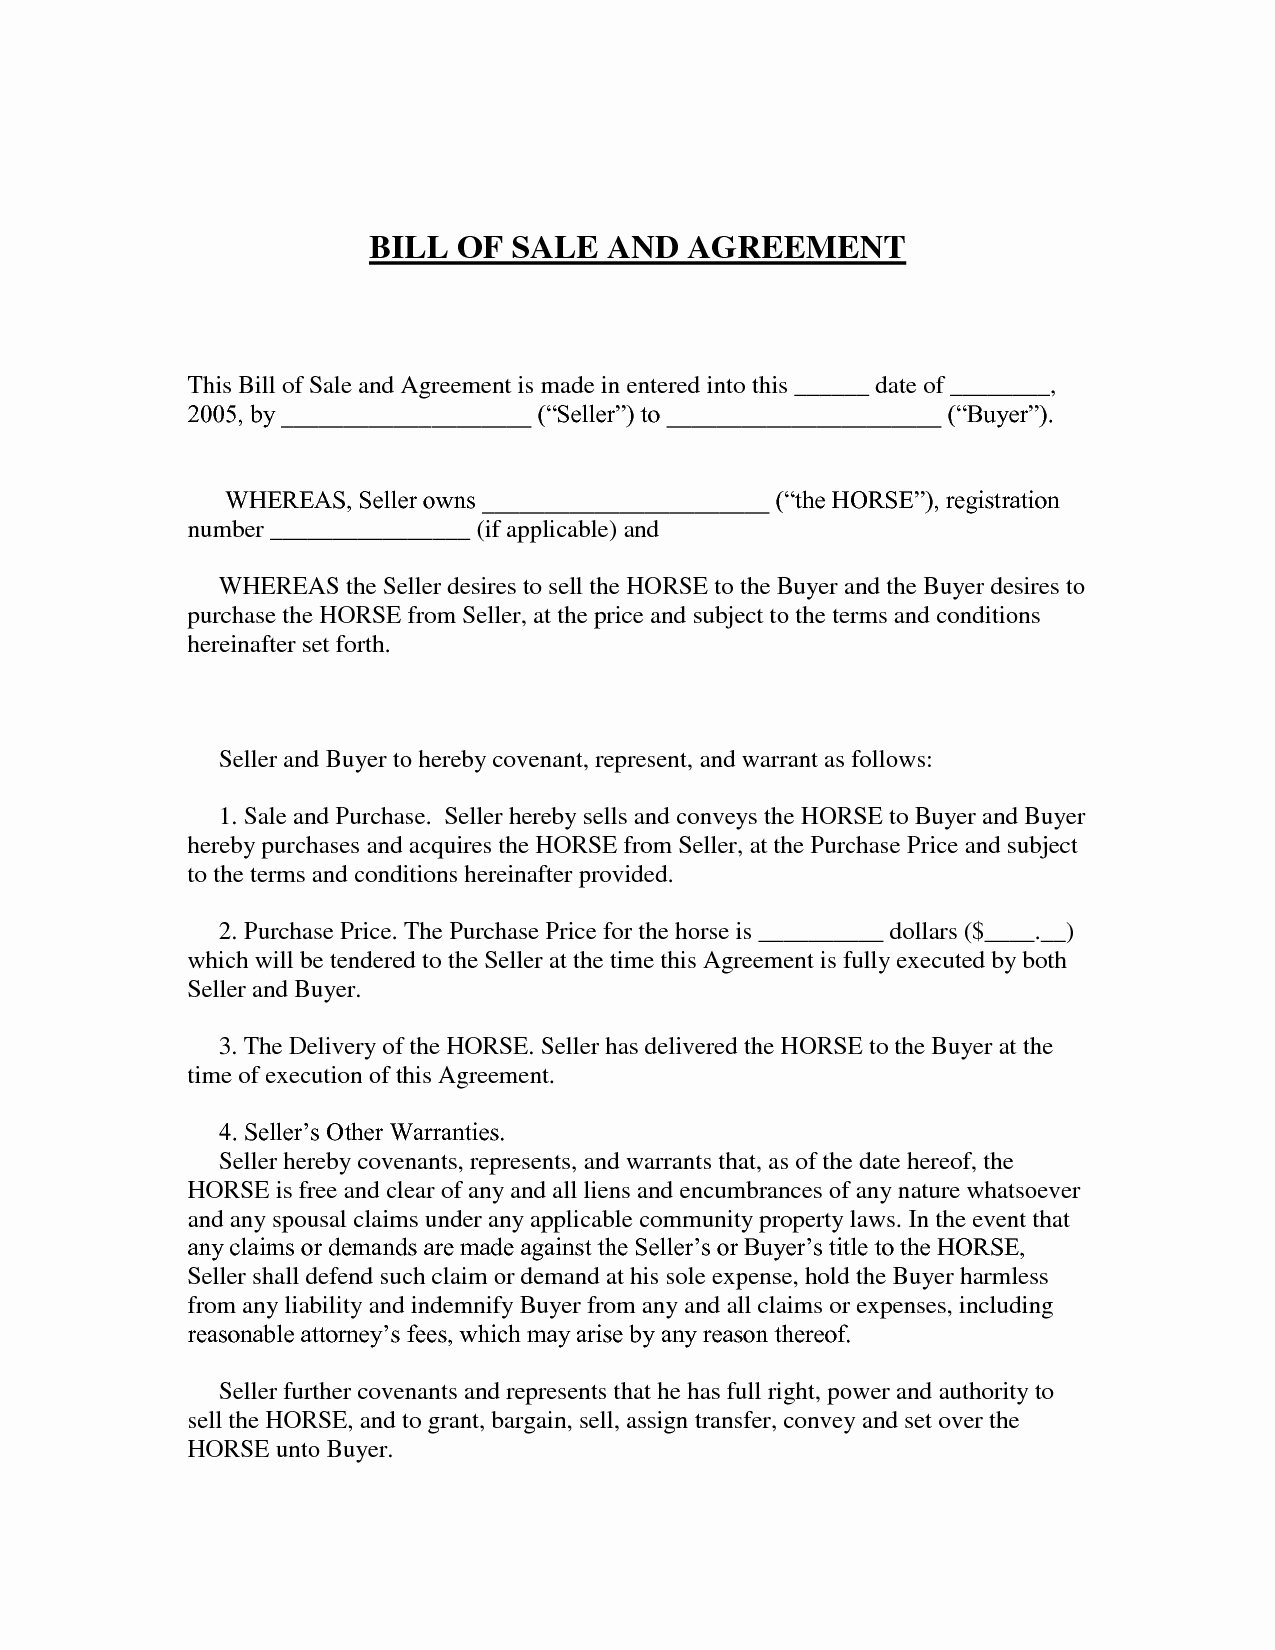 Bill Of Sale Payment Agreement Luxury 11 Best Of Bill Sale Payment Agreement Bill Of